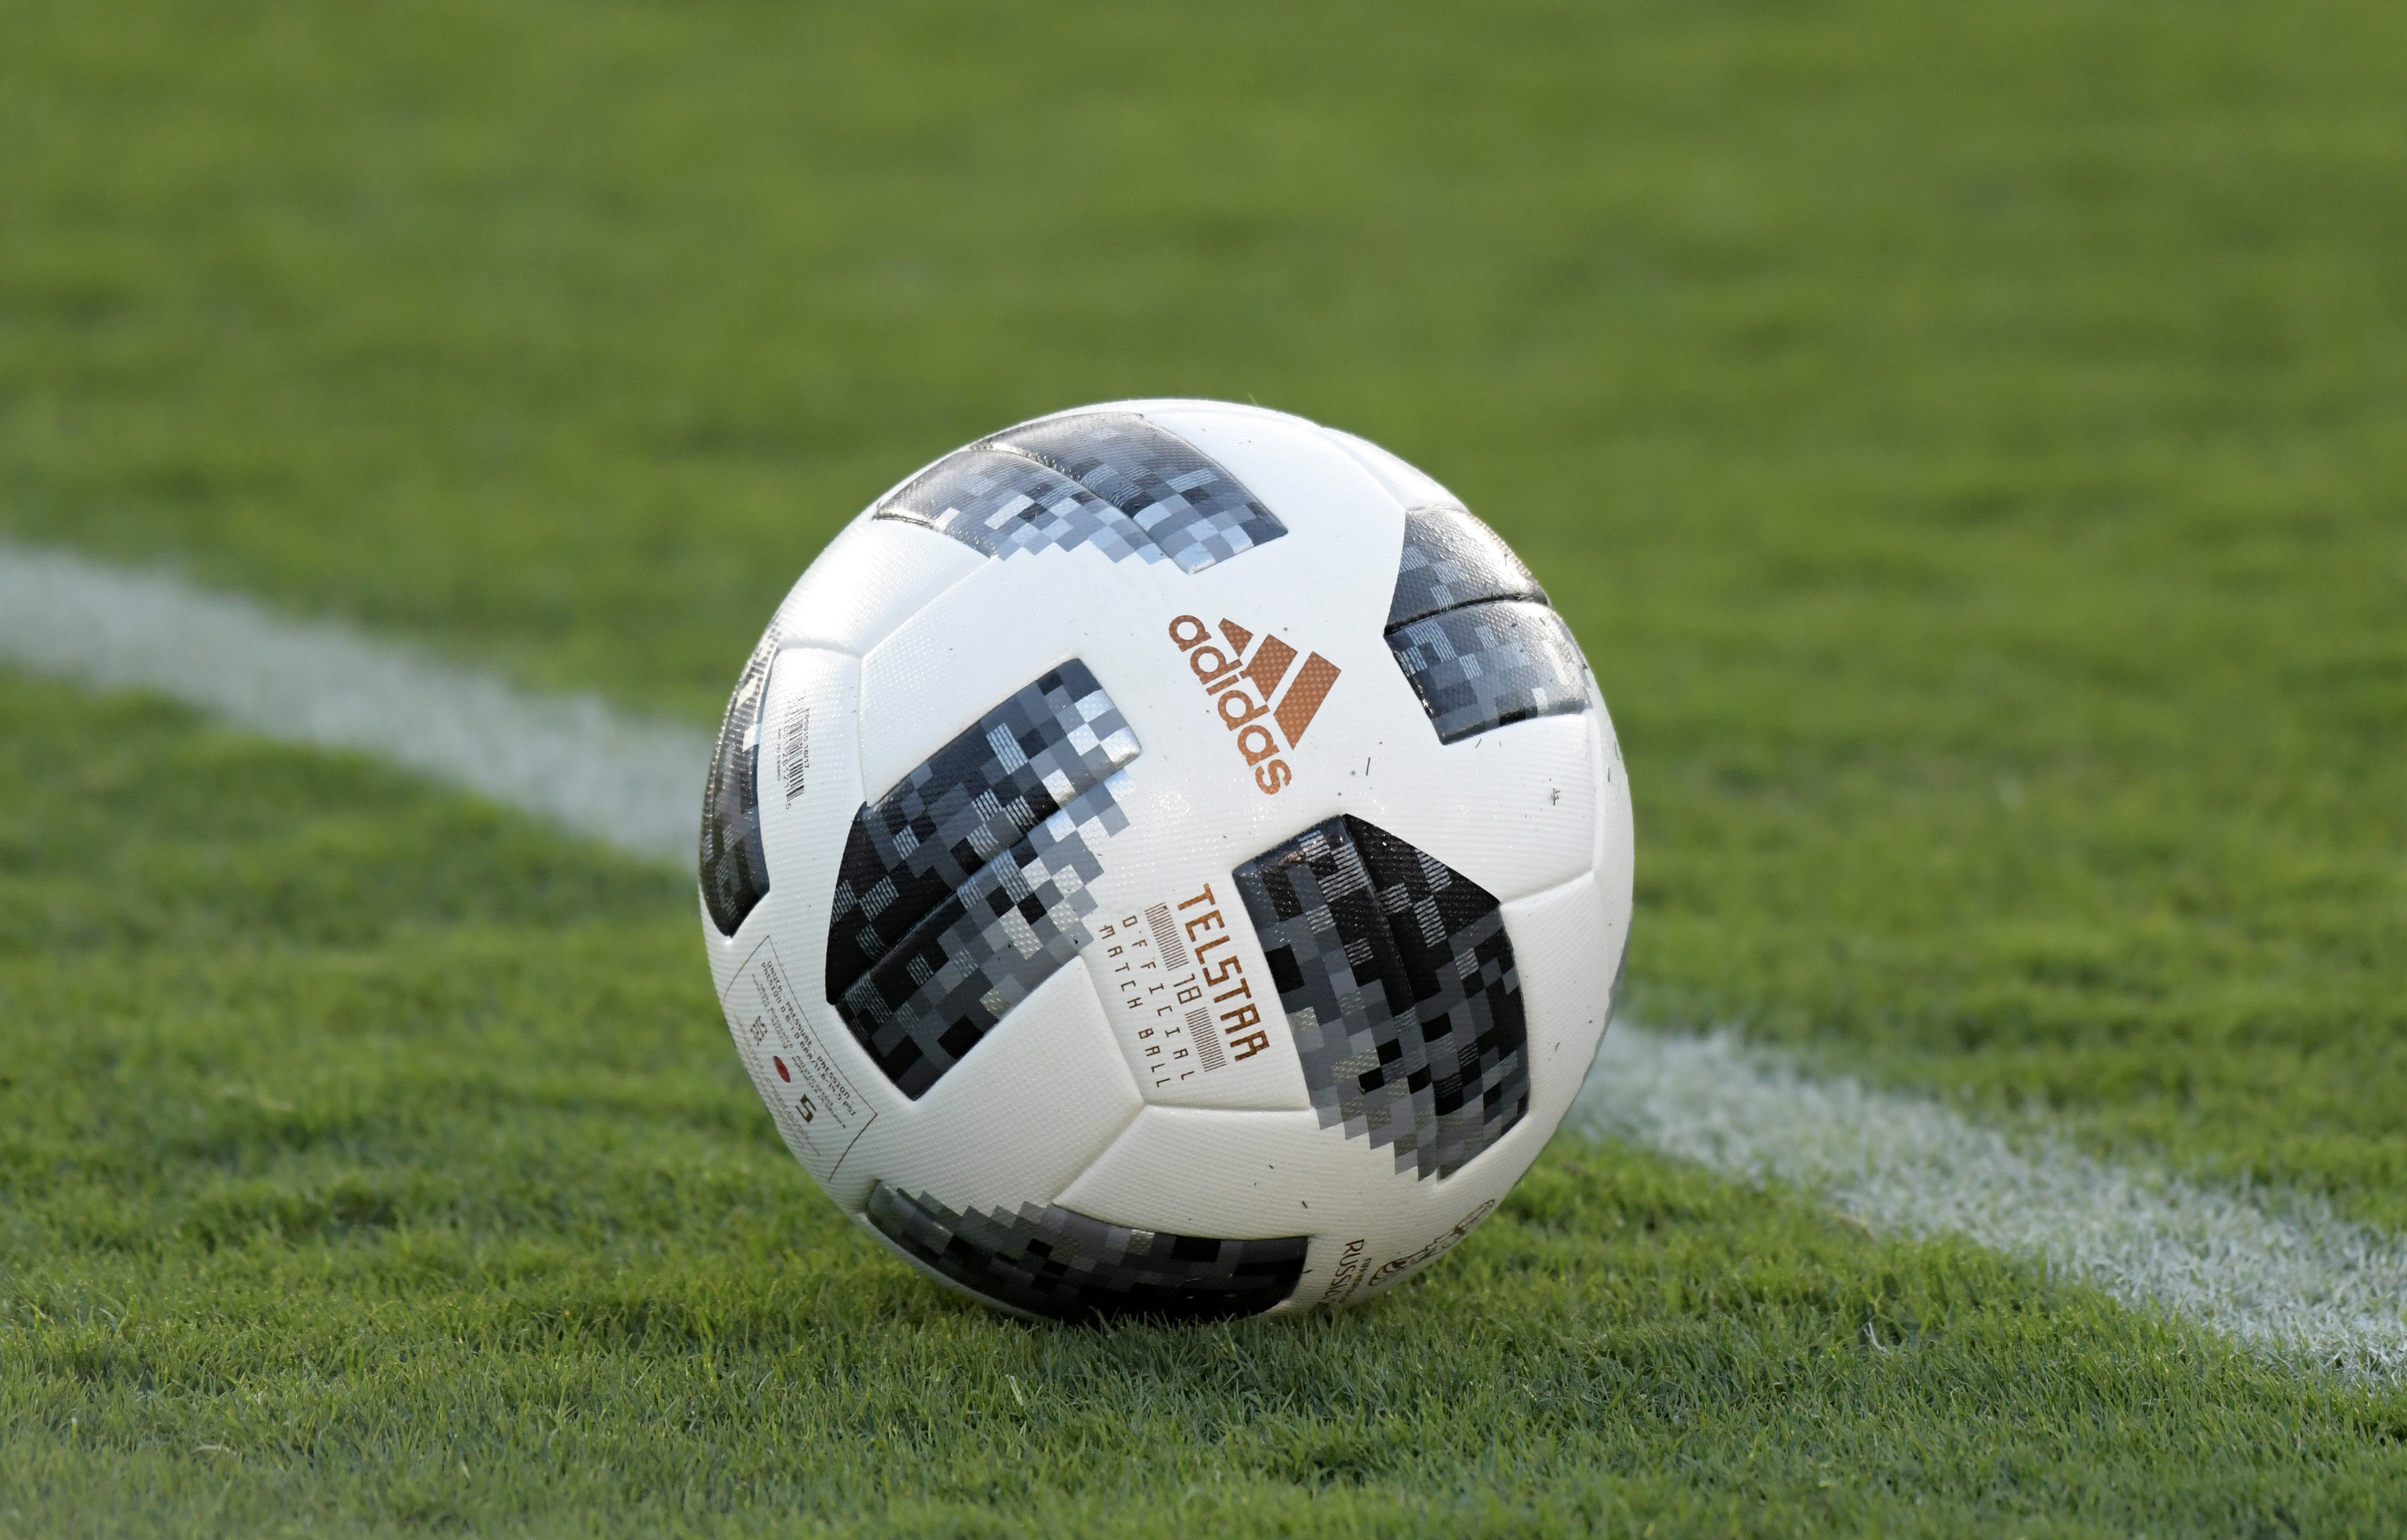 May 28, 2018; Pasadena, CA, USA; Detailed view of an Adidas telstar official FIFA World Cup Russia 2018 soccer ball on the field international friendly between Mexico and Wales at the Rose Bowl. The teams played to a 0-0 tie. Mandatory Credit: Kirby Lee-USA TODAY Sports